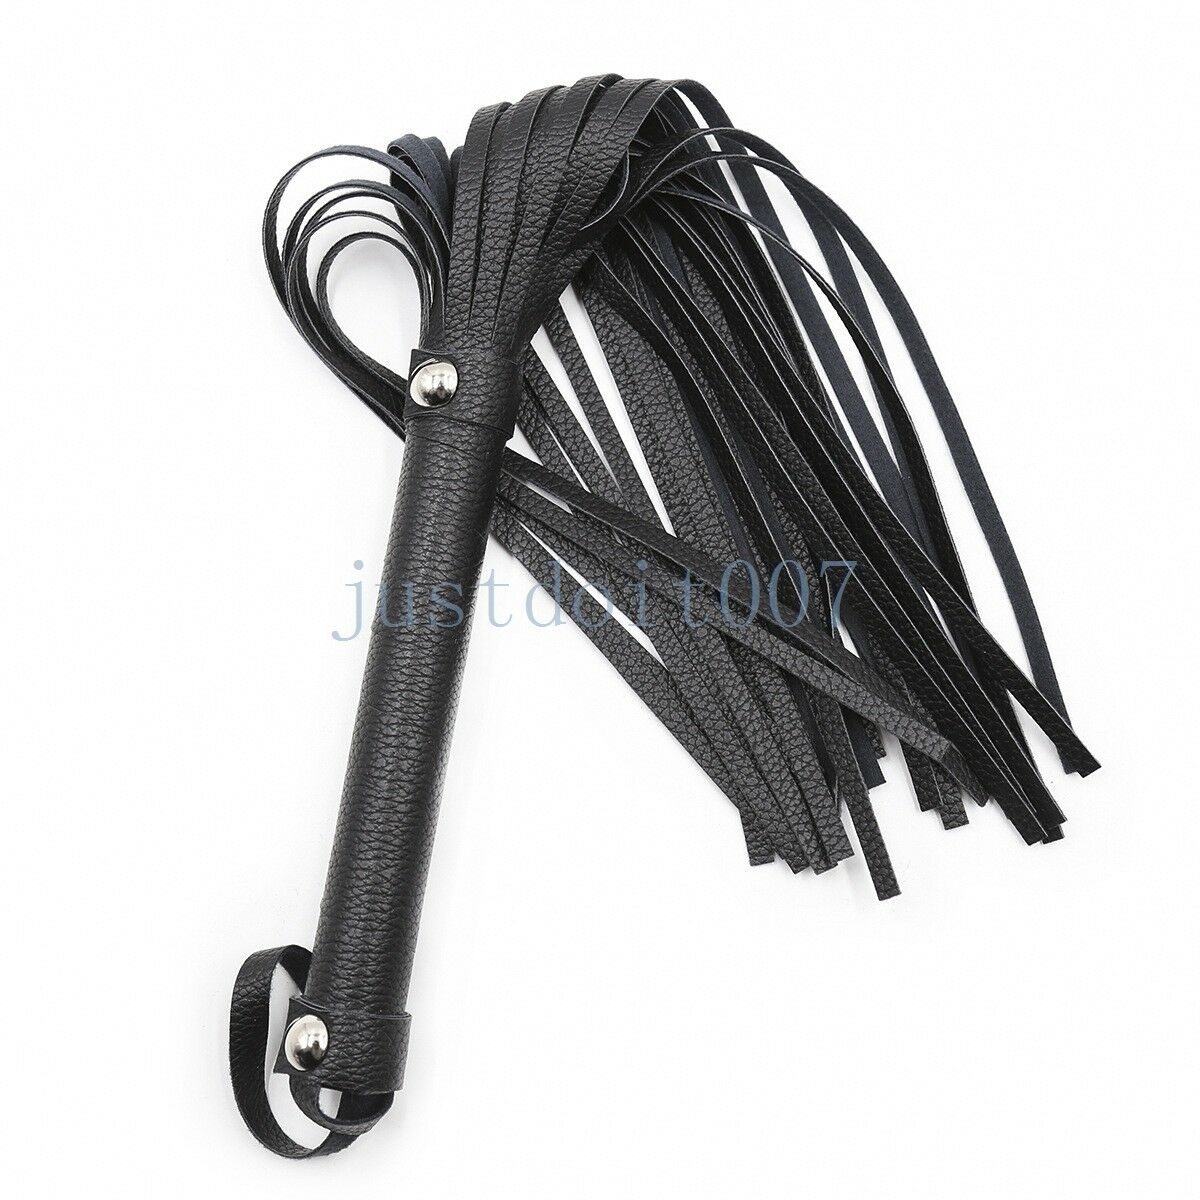 Riding Crop PU Pelle Whip Flogger Handle Restraints Roleplay Roleplay Roleplay Queen Slave Nuovo 56fcaf